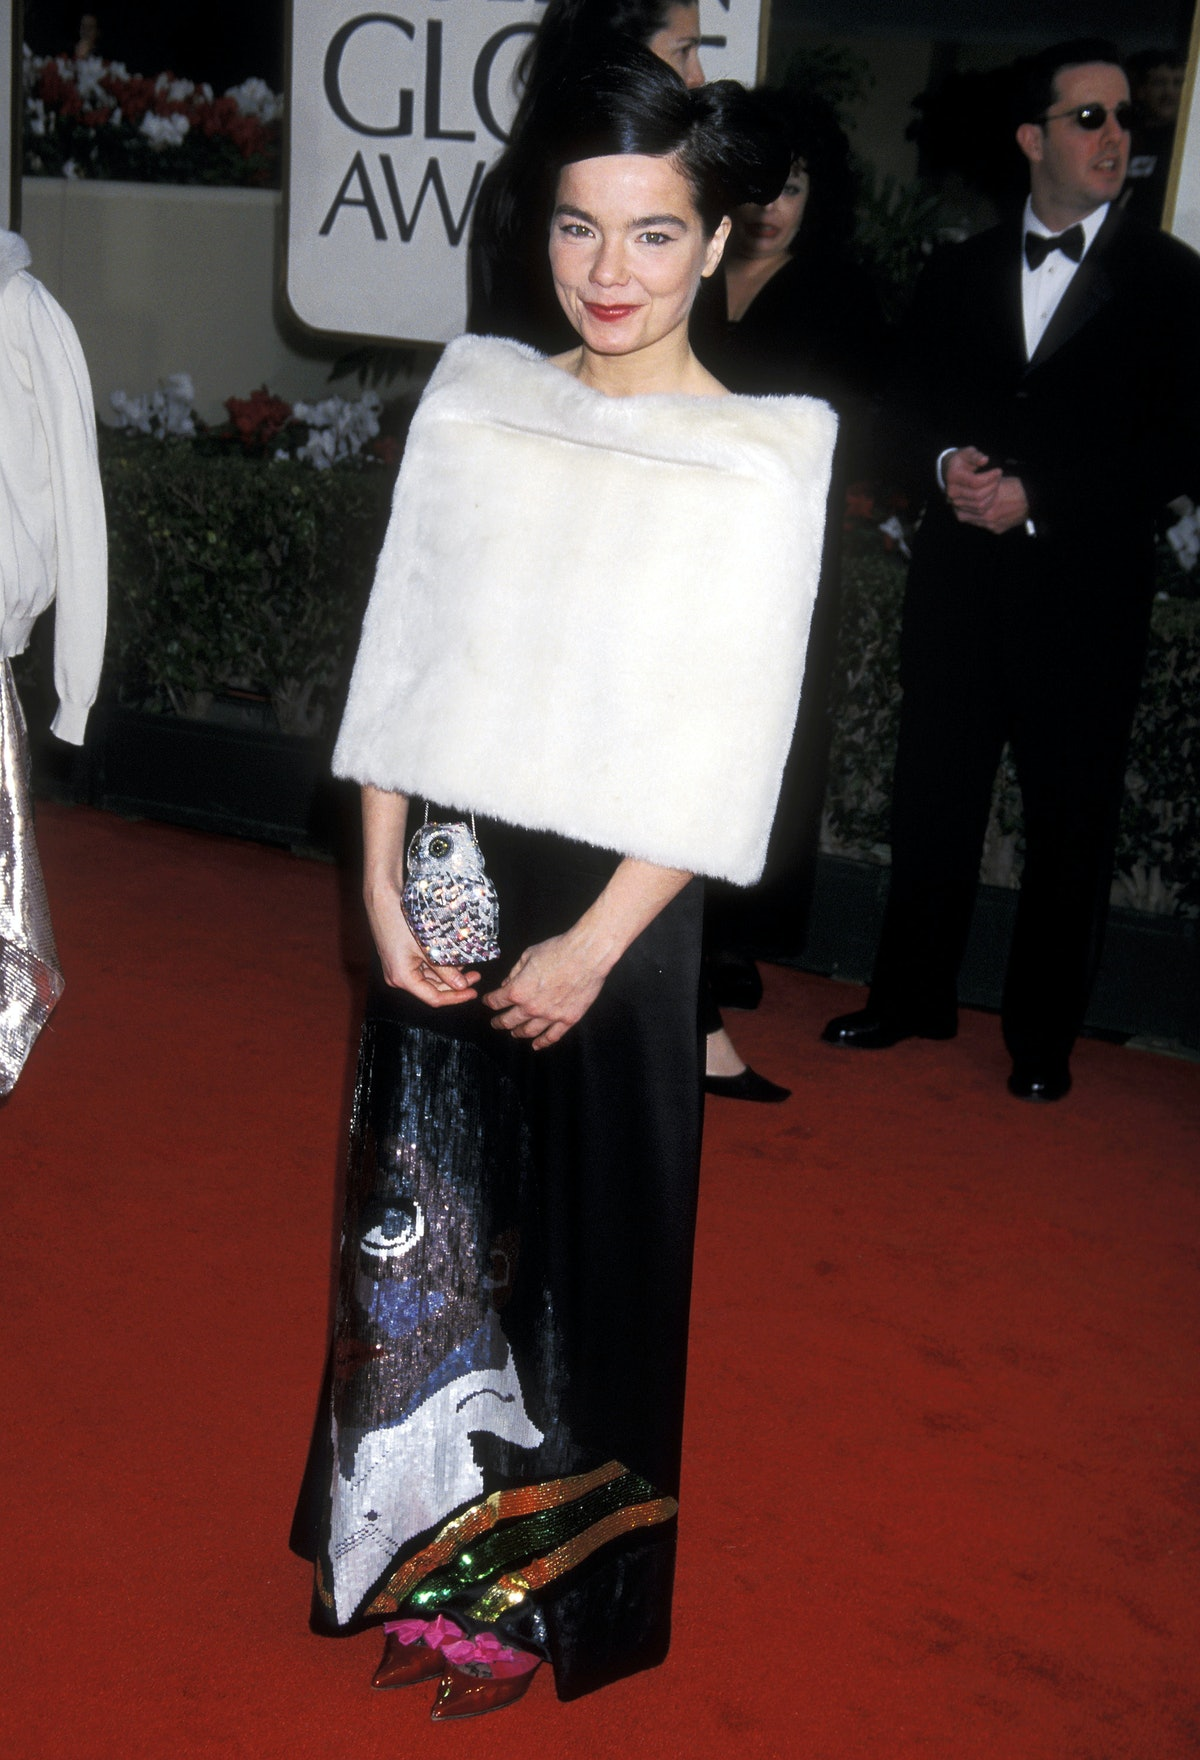 The 58th Annual Golden Globe Awards - Arrivals